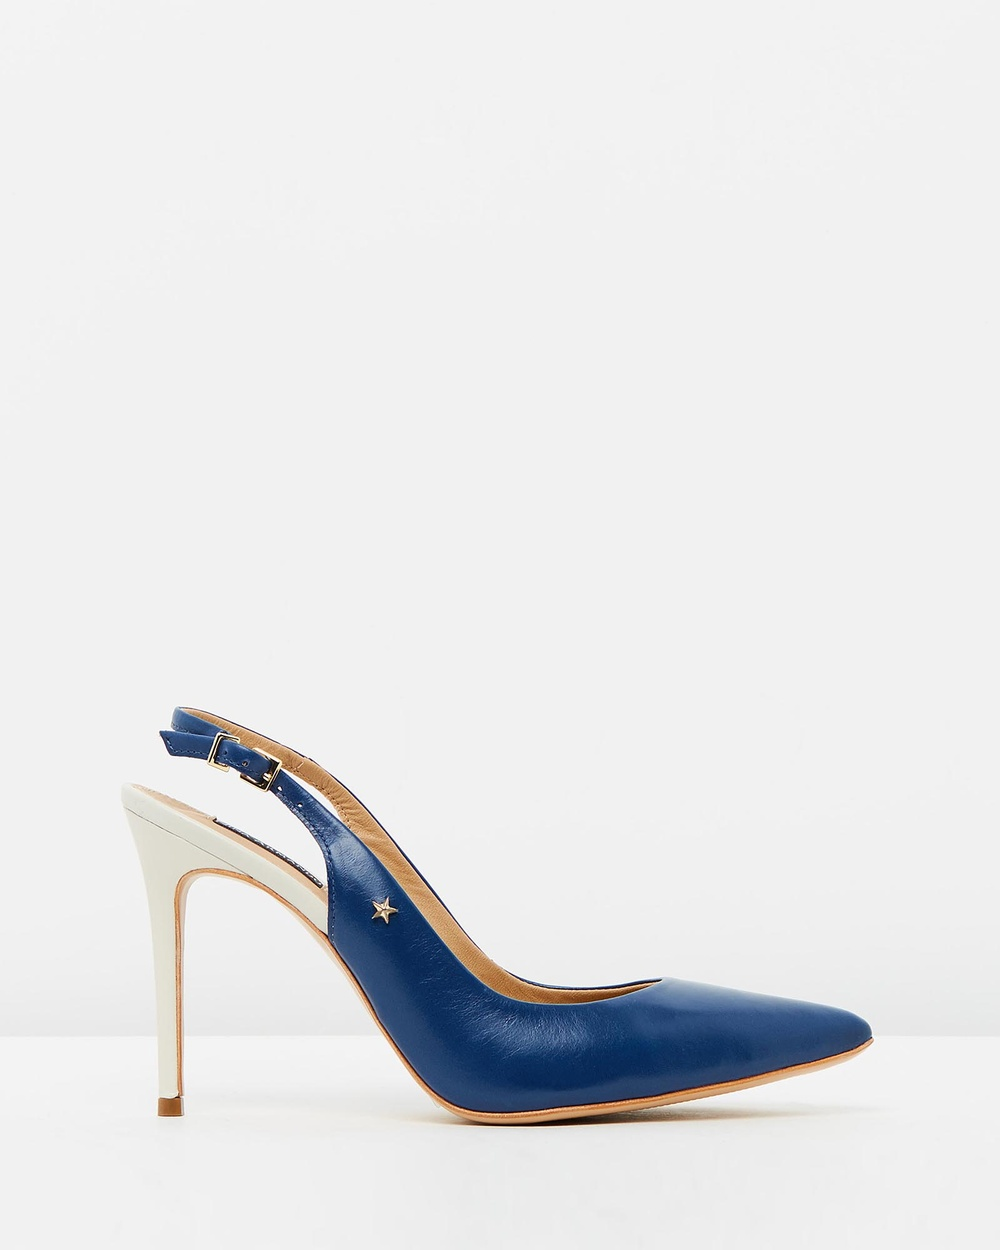 Nina Armando Farah Heels Royal Blue Amp Off White Farah